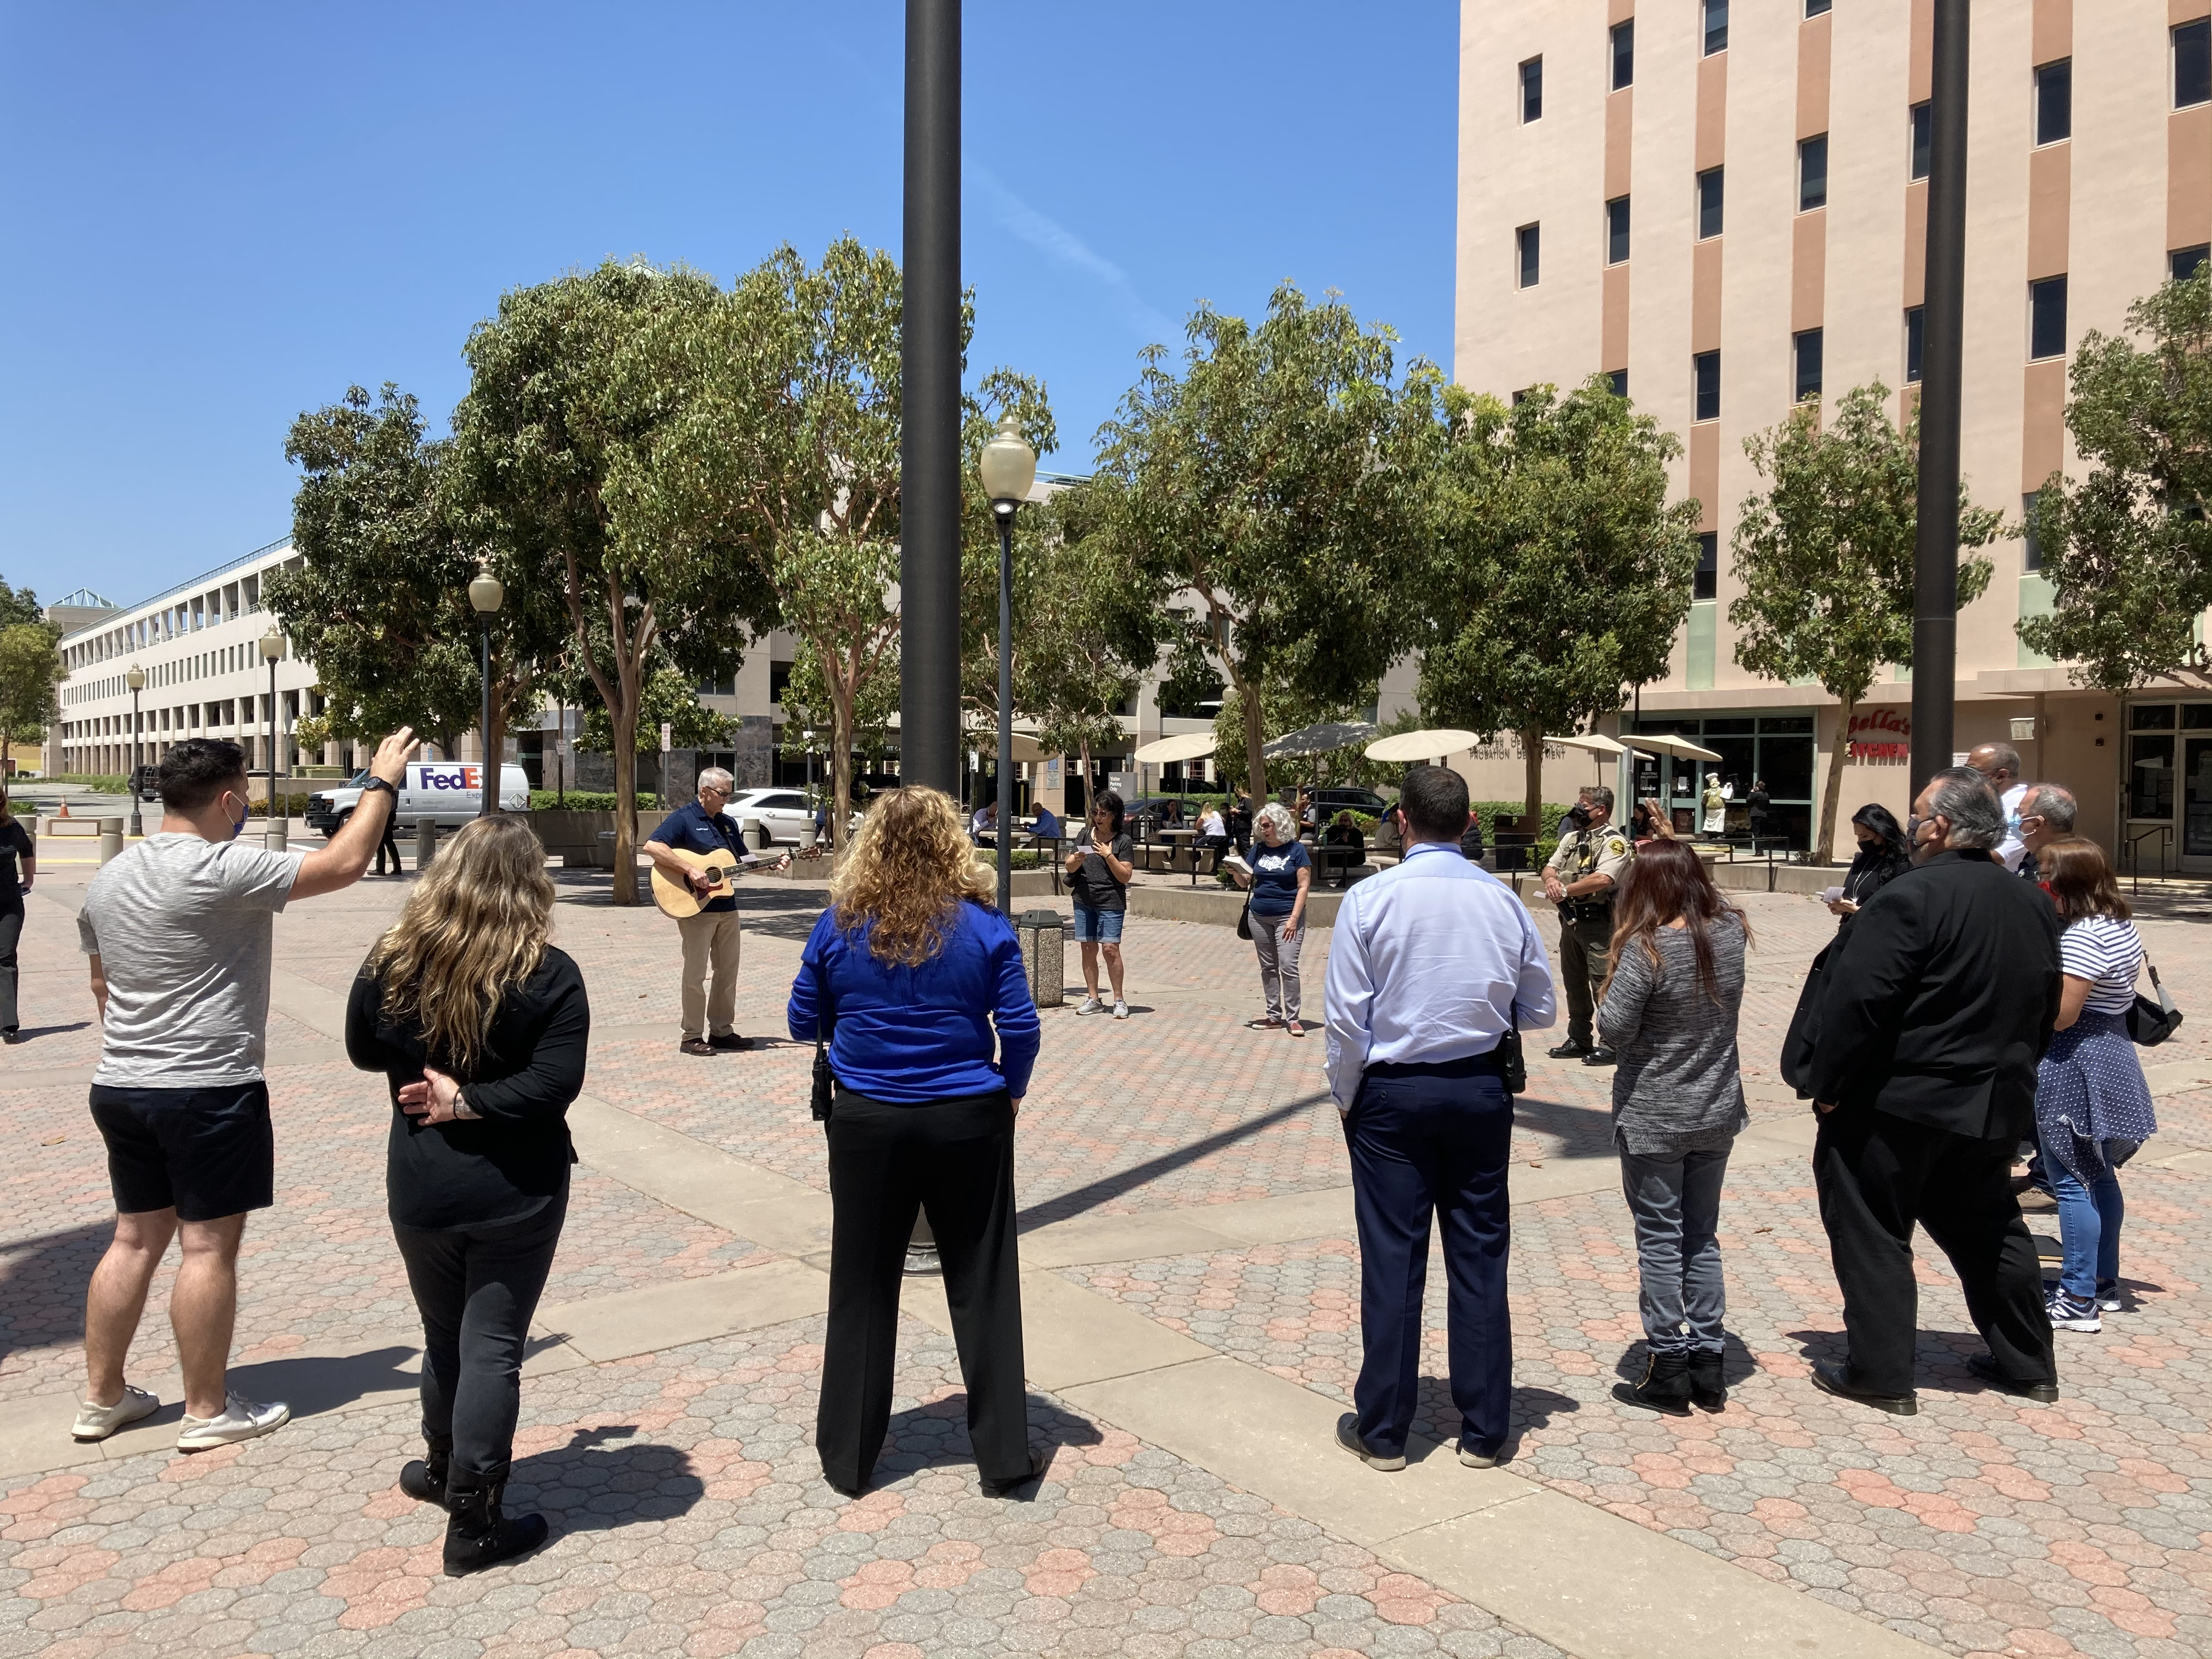 NDP attendees sing a worship song together outside of a Juvenile Justice Center in Santa Ana, California.